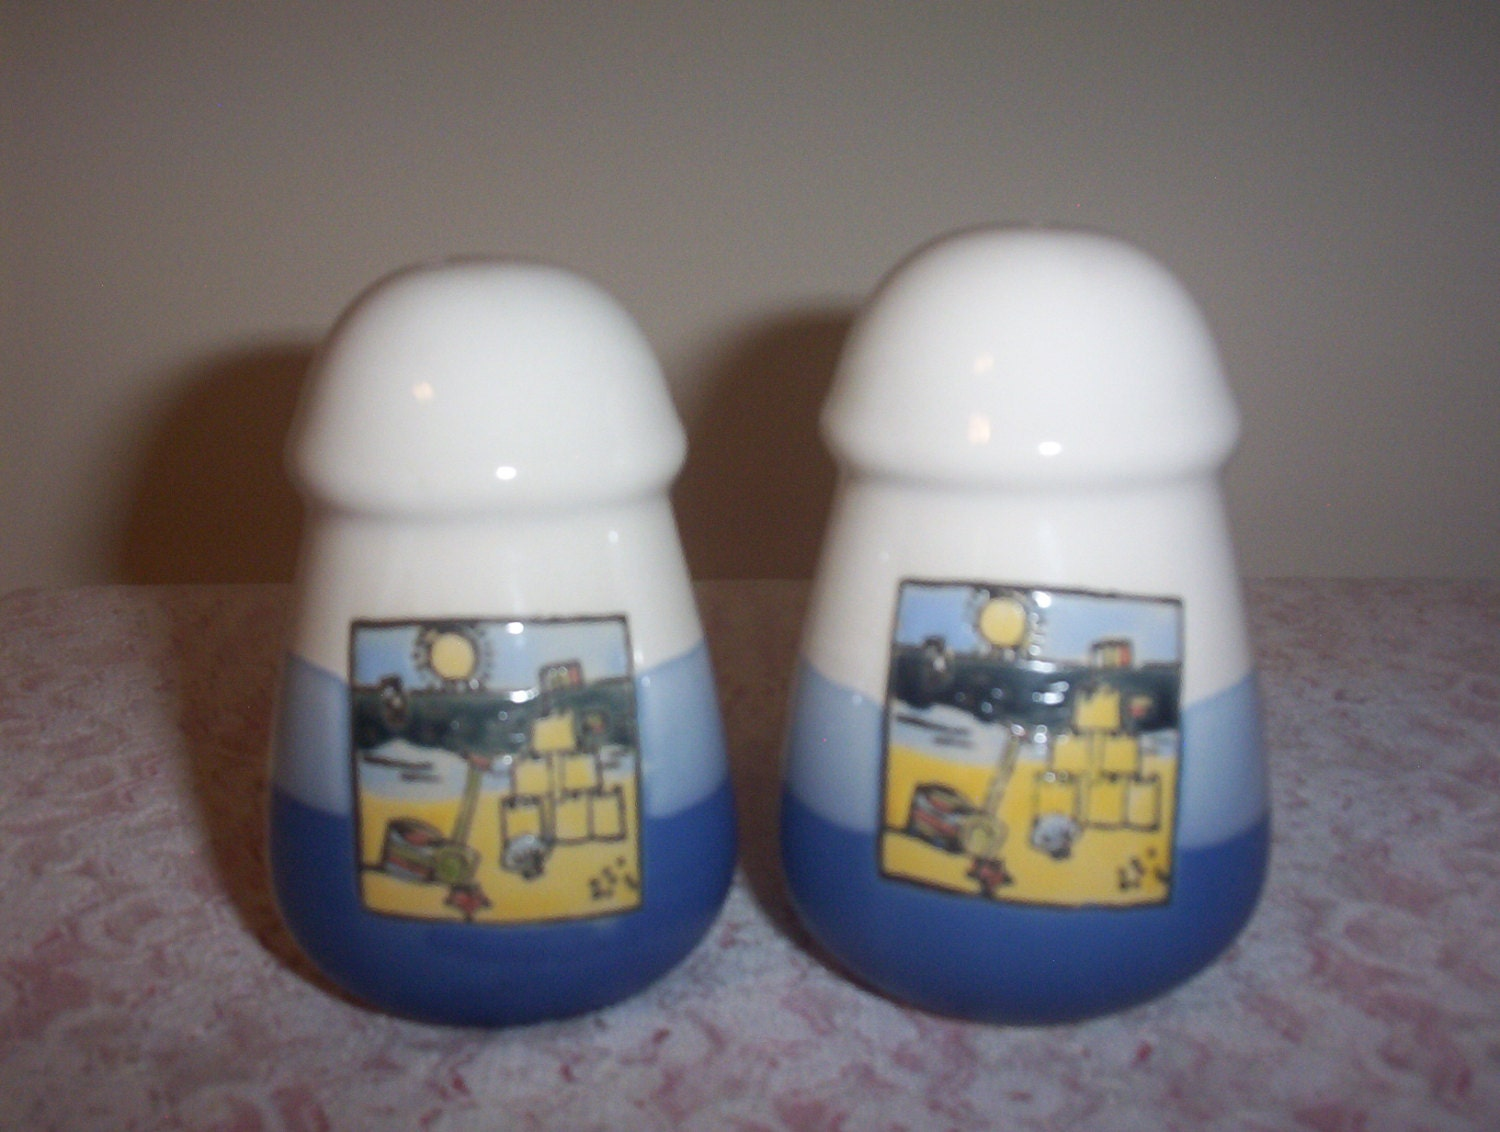 Summer Fun At The Beach Collectible Salt And Pepper Shakers